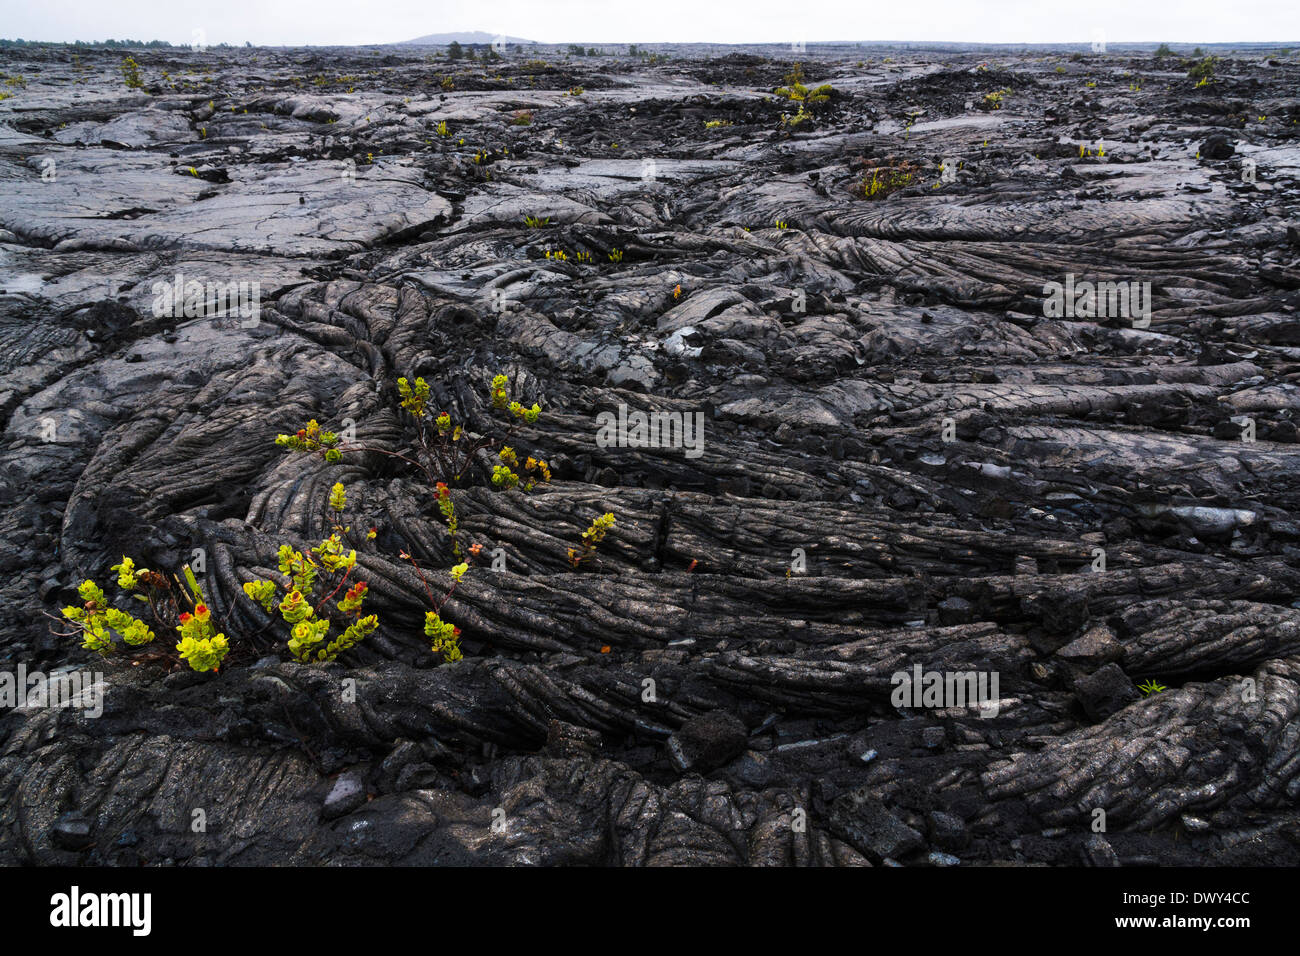 Pāhoehoe ('smooth, unbroken lava'). Hawaii Volcanoes National Park, Big Island, Hawaii, USA. - Stock Image